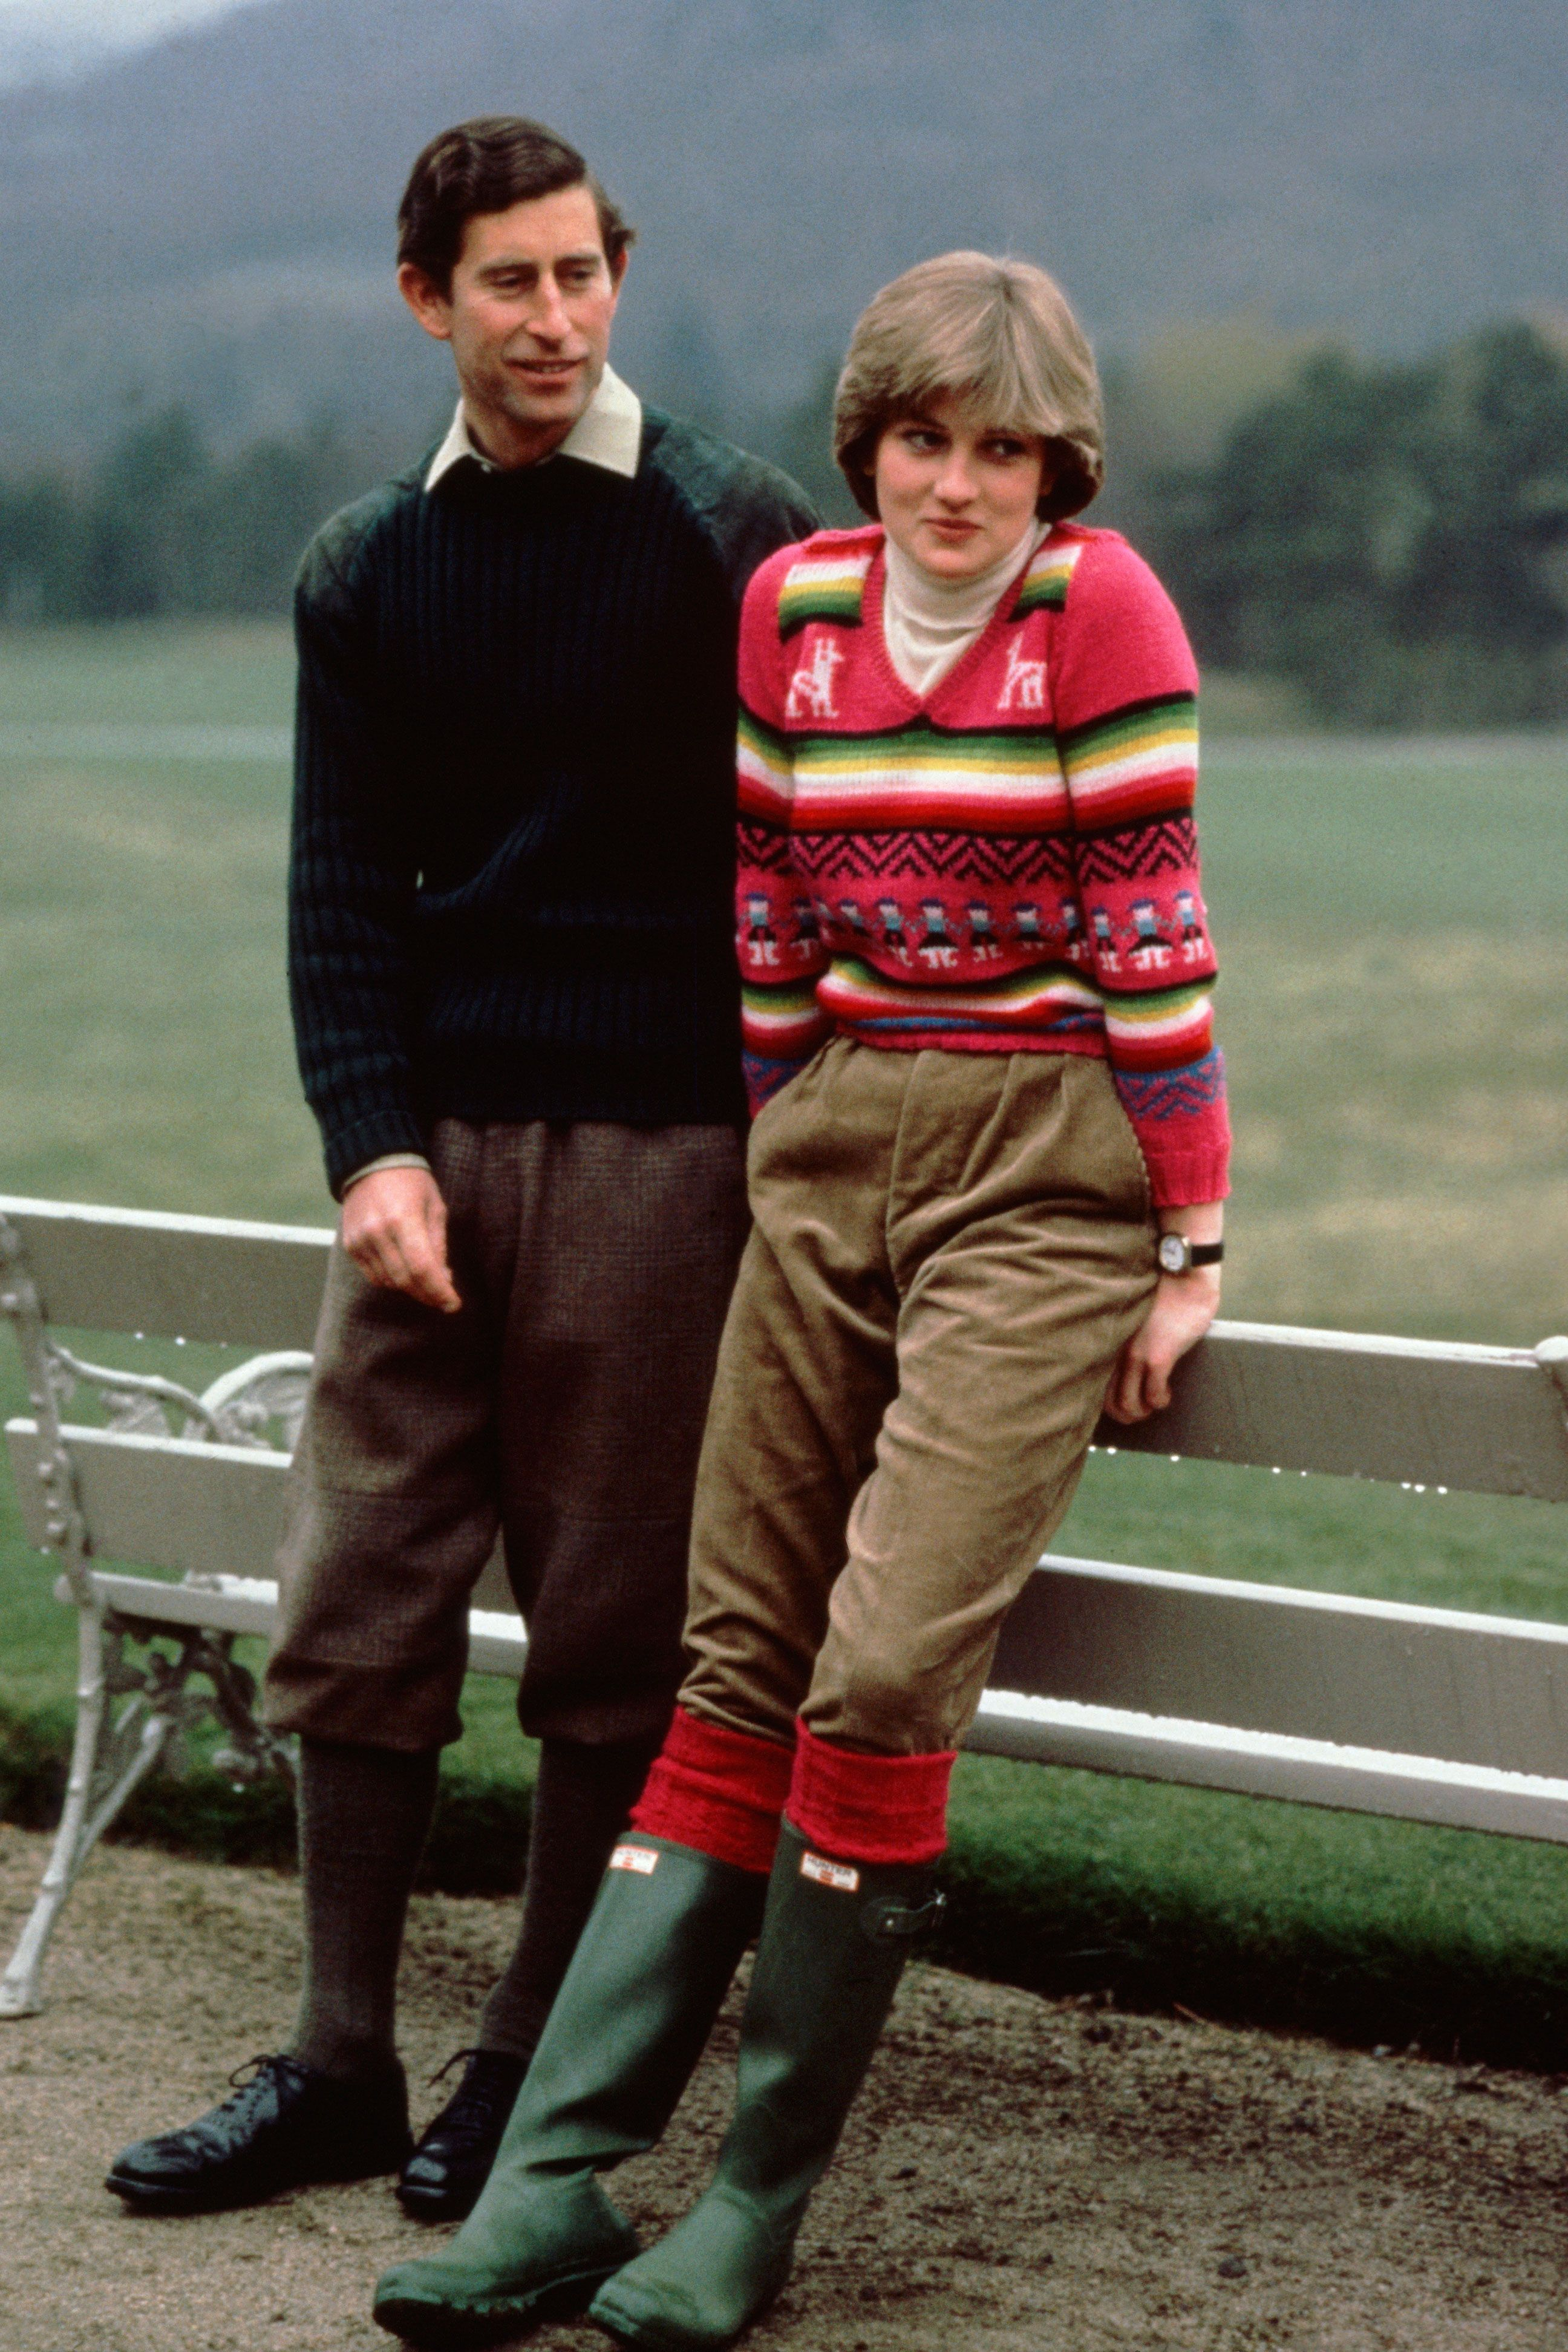 <p>No one wears wellies like Princess Di&nbsp&#x3B;wore&nbsp&#x3B;wellies. Although not one of her most famous&nbsp&#x3B;looks, this outfit from before her wedding&nbsp&#x3B;inspired women across the world to haul out their rainboots.&nbsp&#x3B;</p>